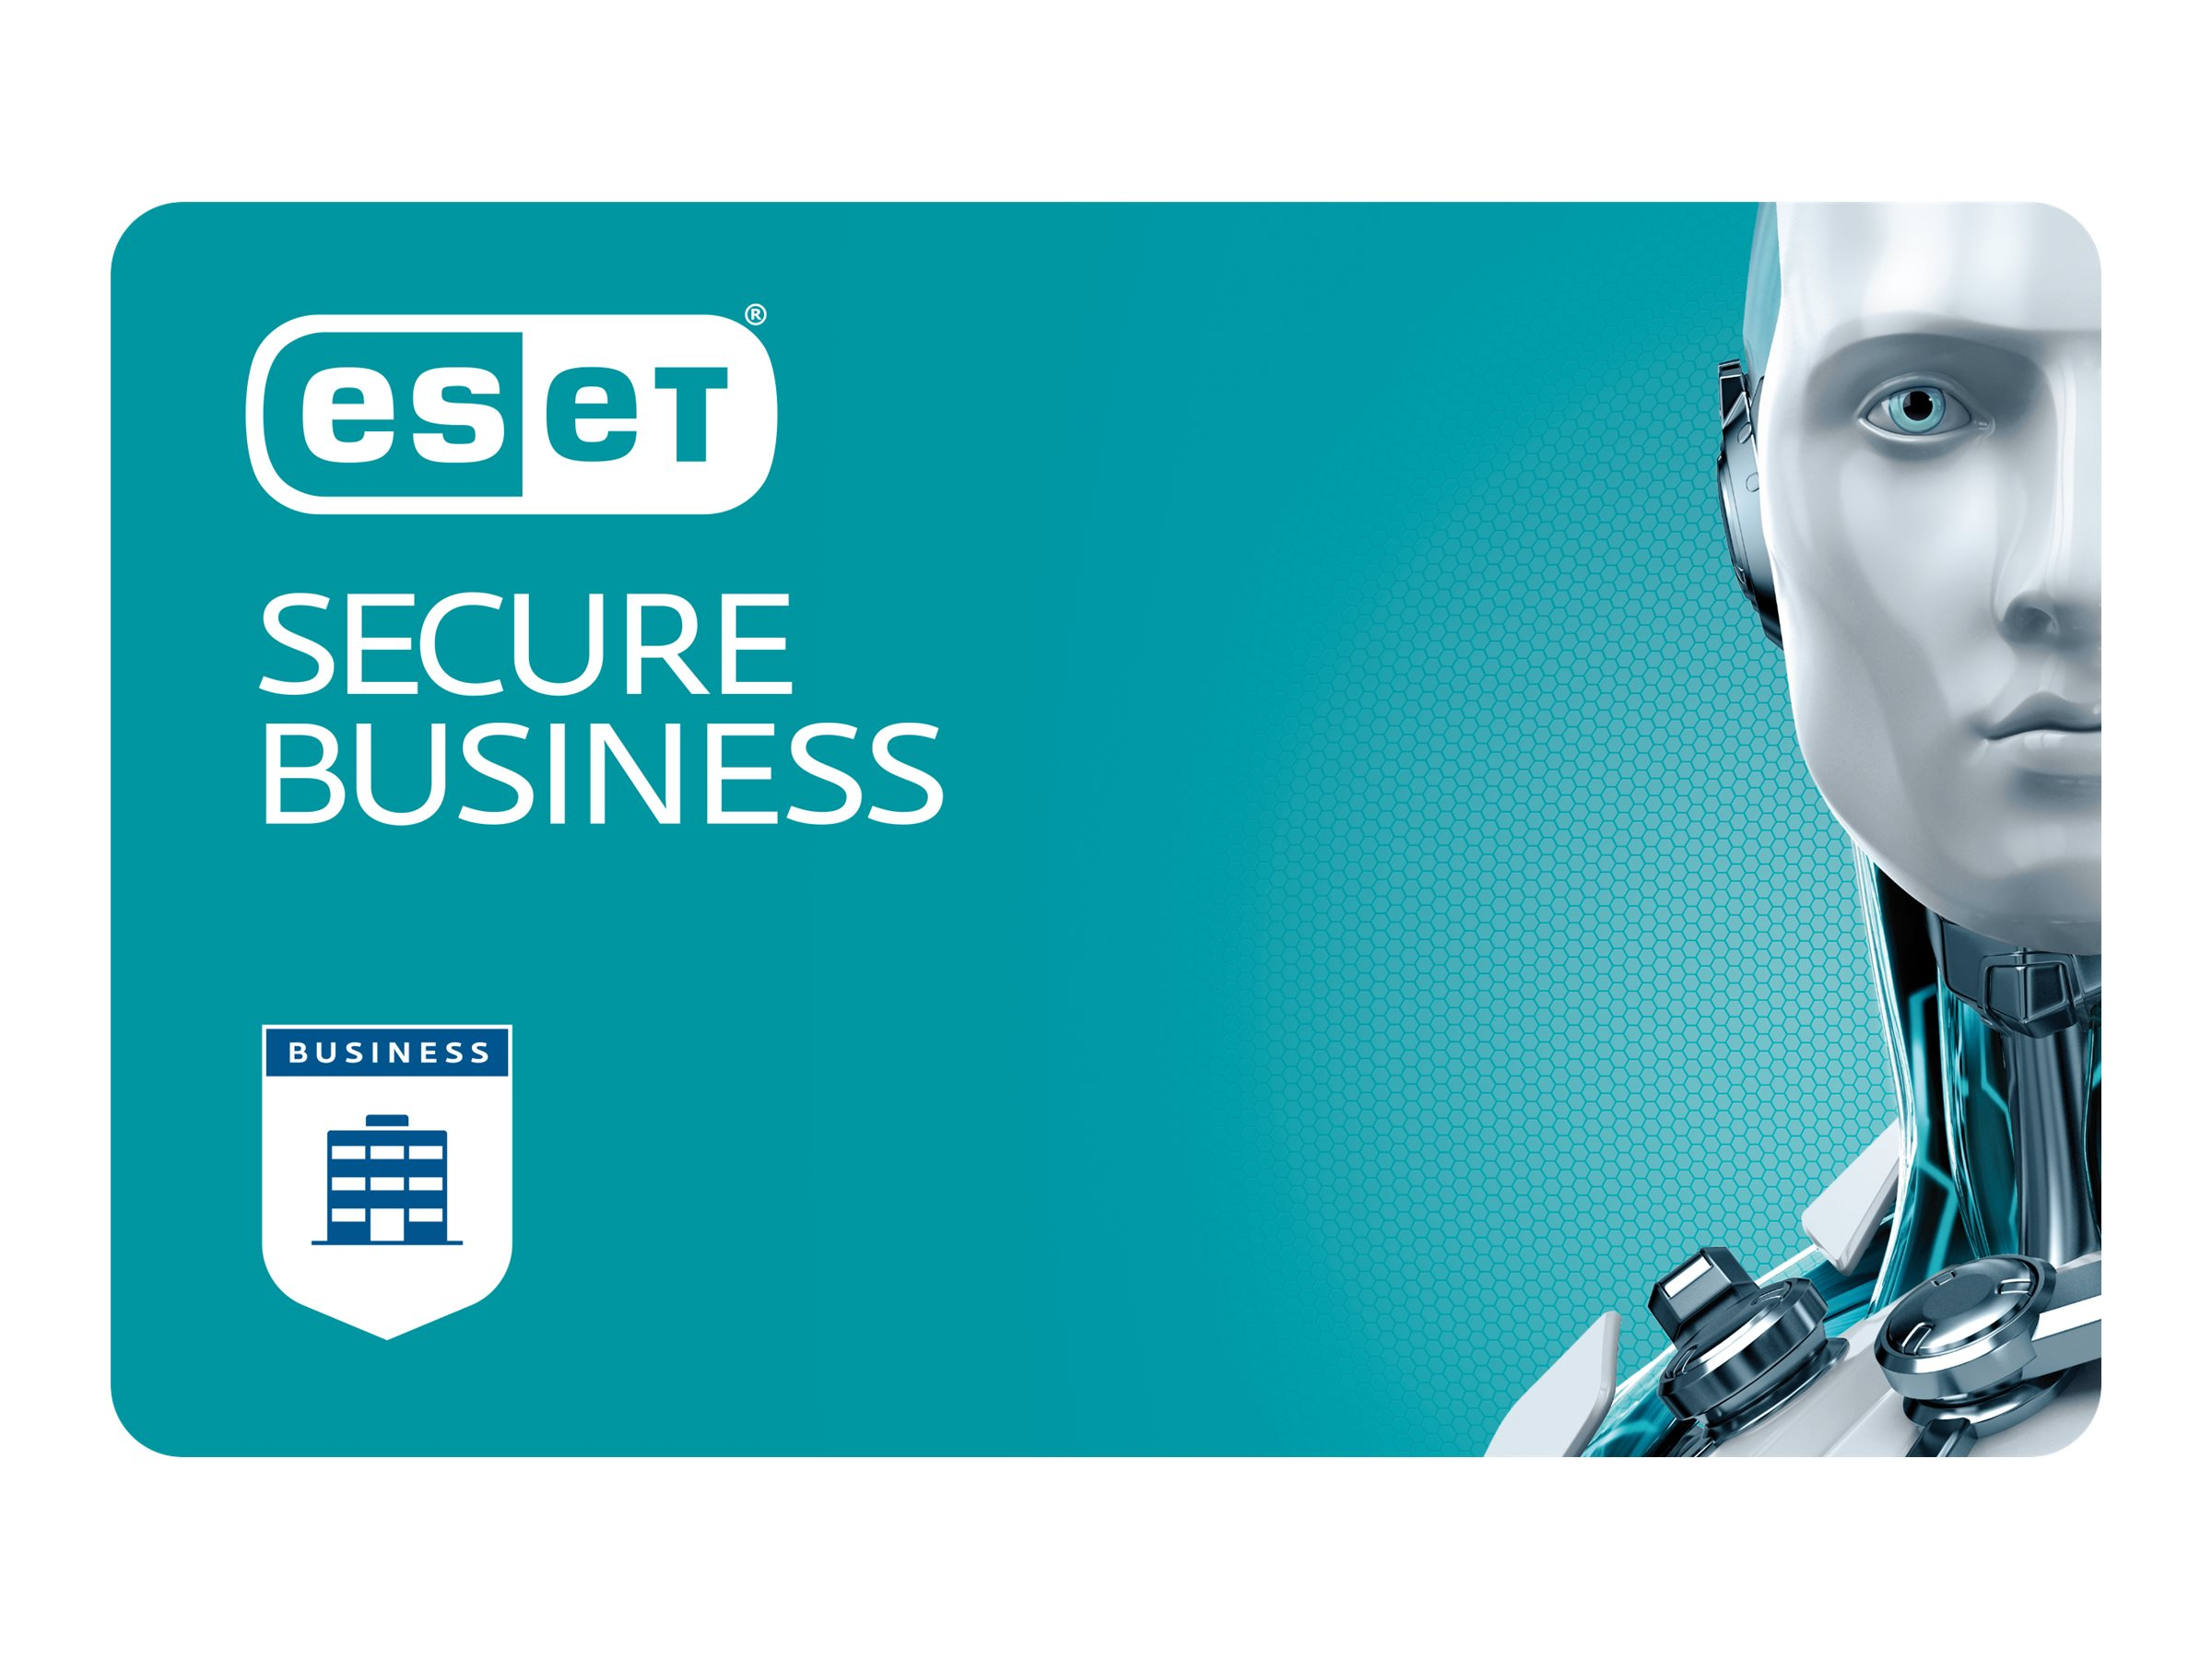 ESET Secure Business - Abonnement-Lizenz (2 Jahre) - 1 Platz - Volumen - 100-249 Lizenzen - Linux, Win, Mac, Android, iOS